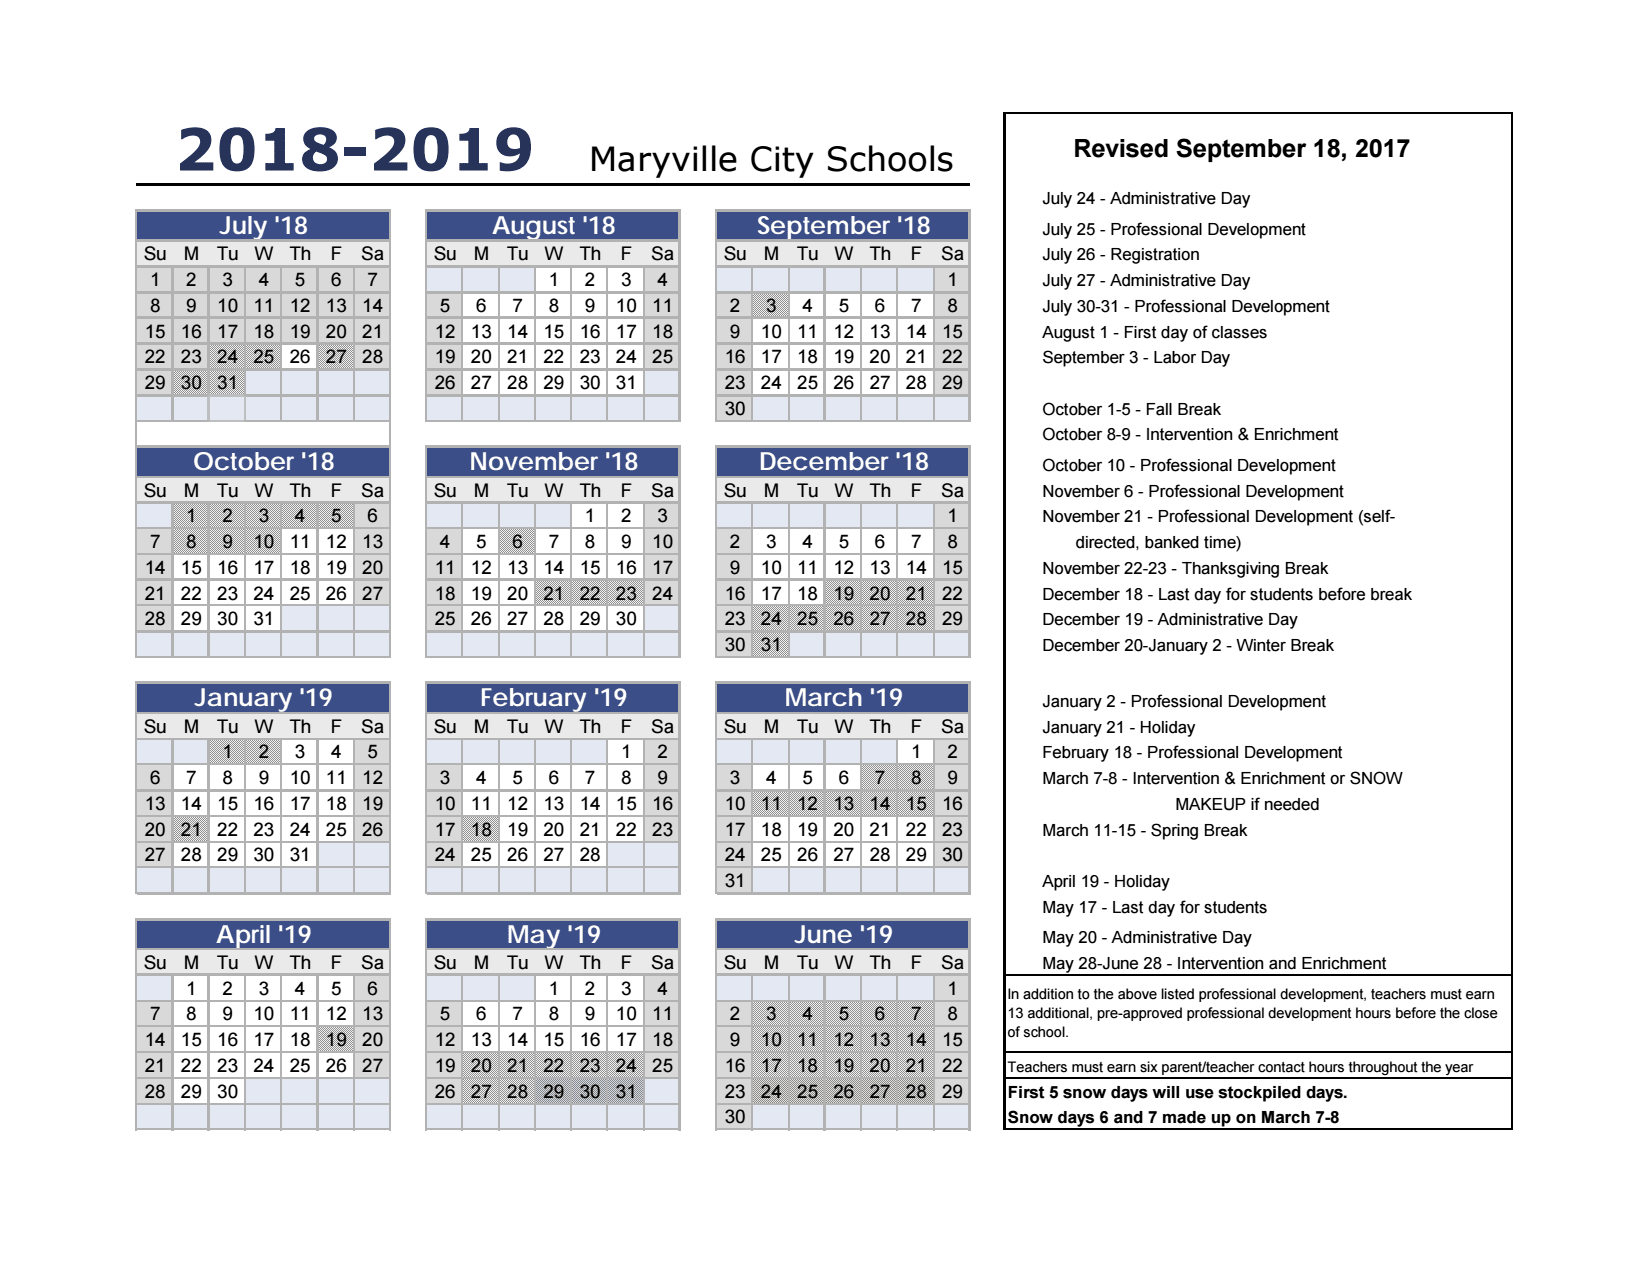 Houston County School Calendar.2018 19 Calendar Print Ready Maryville City Schools